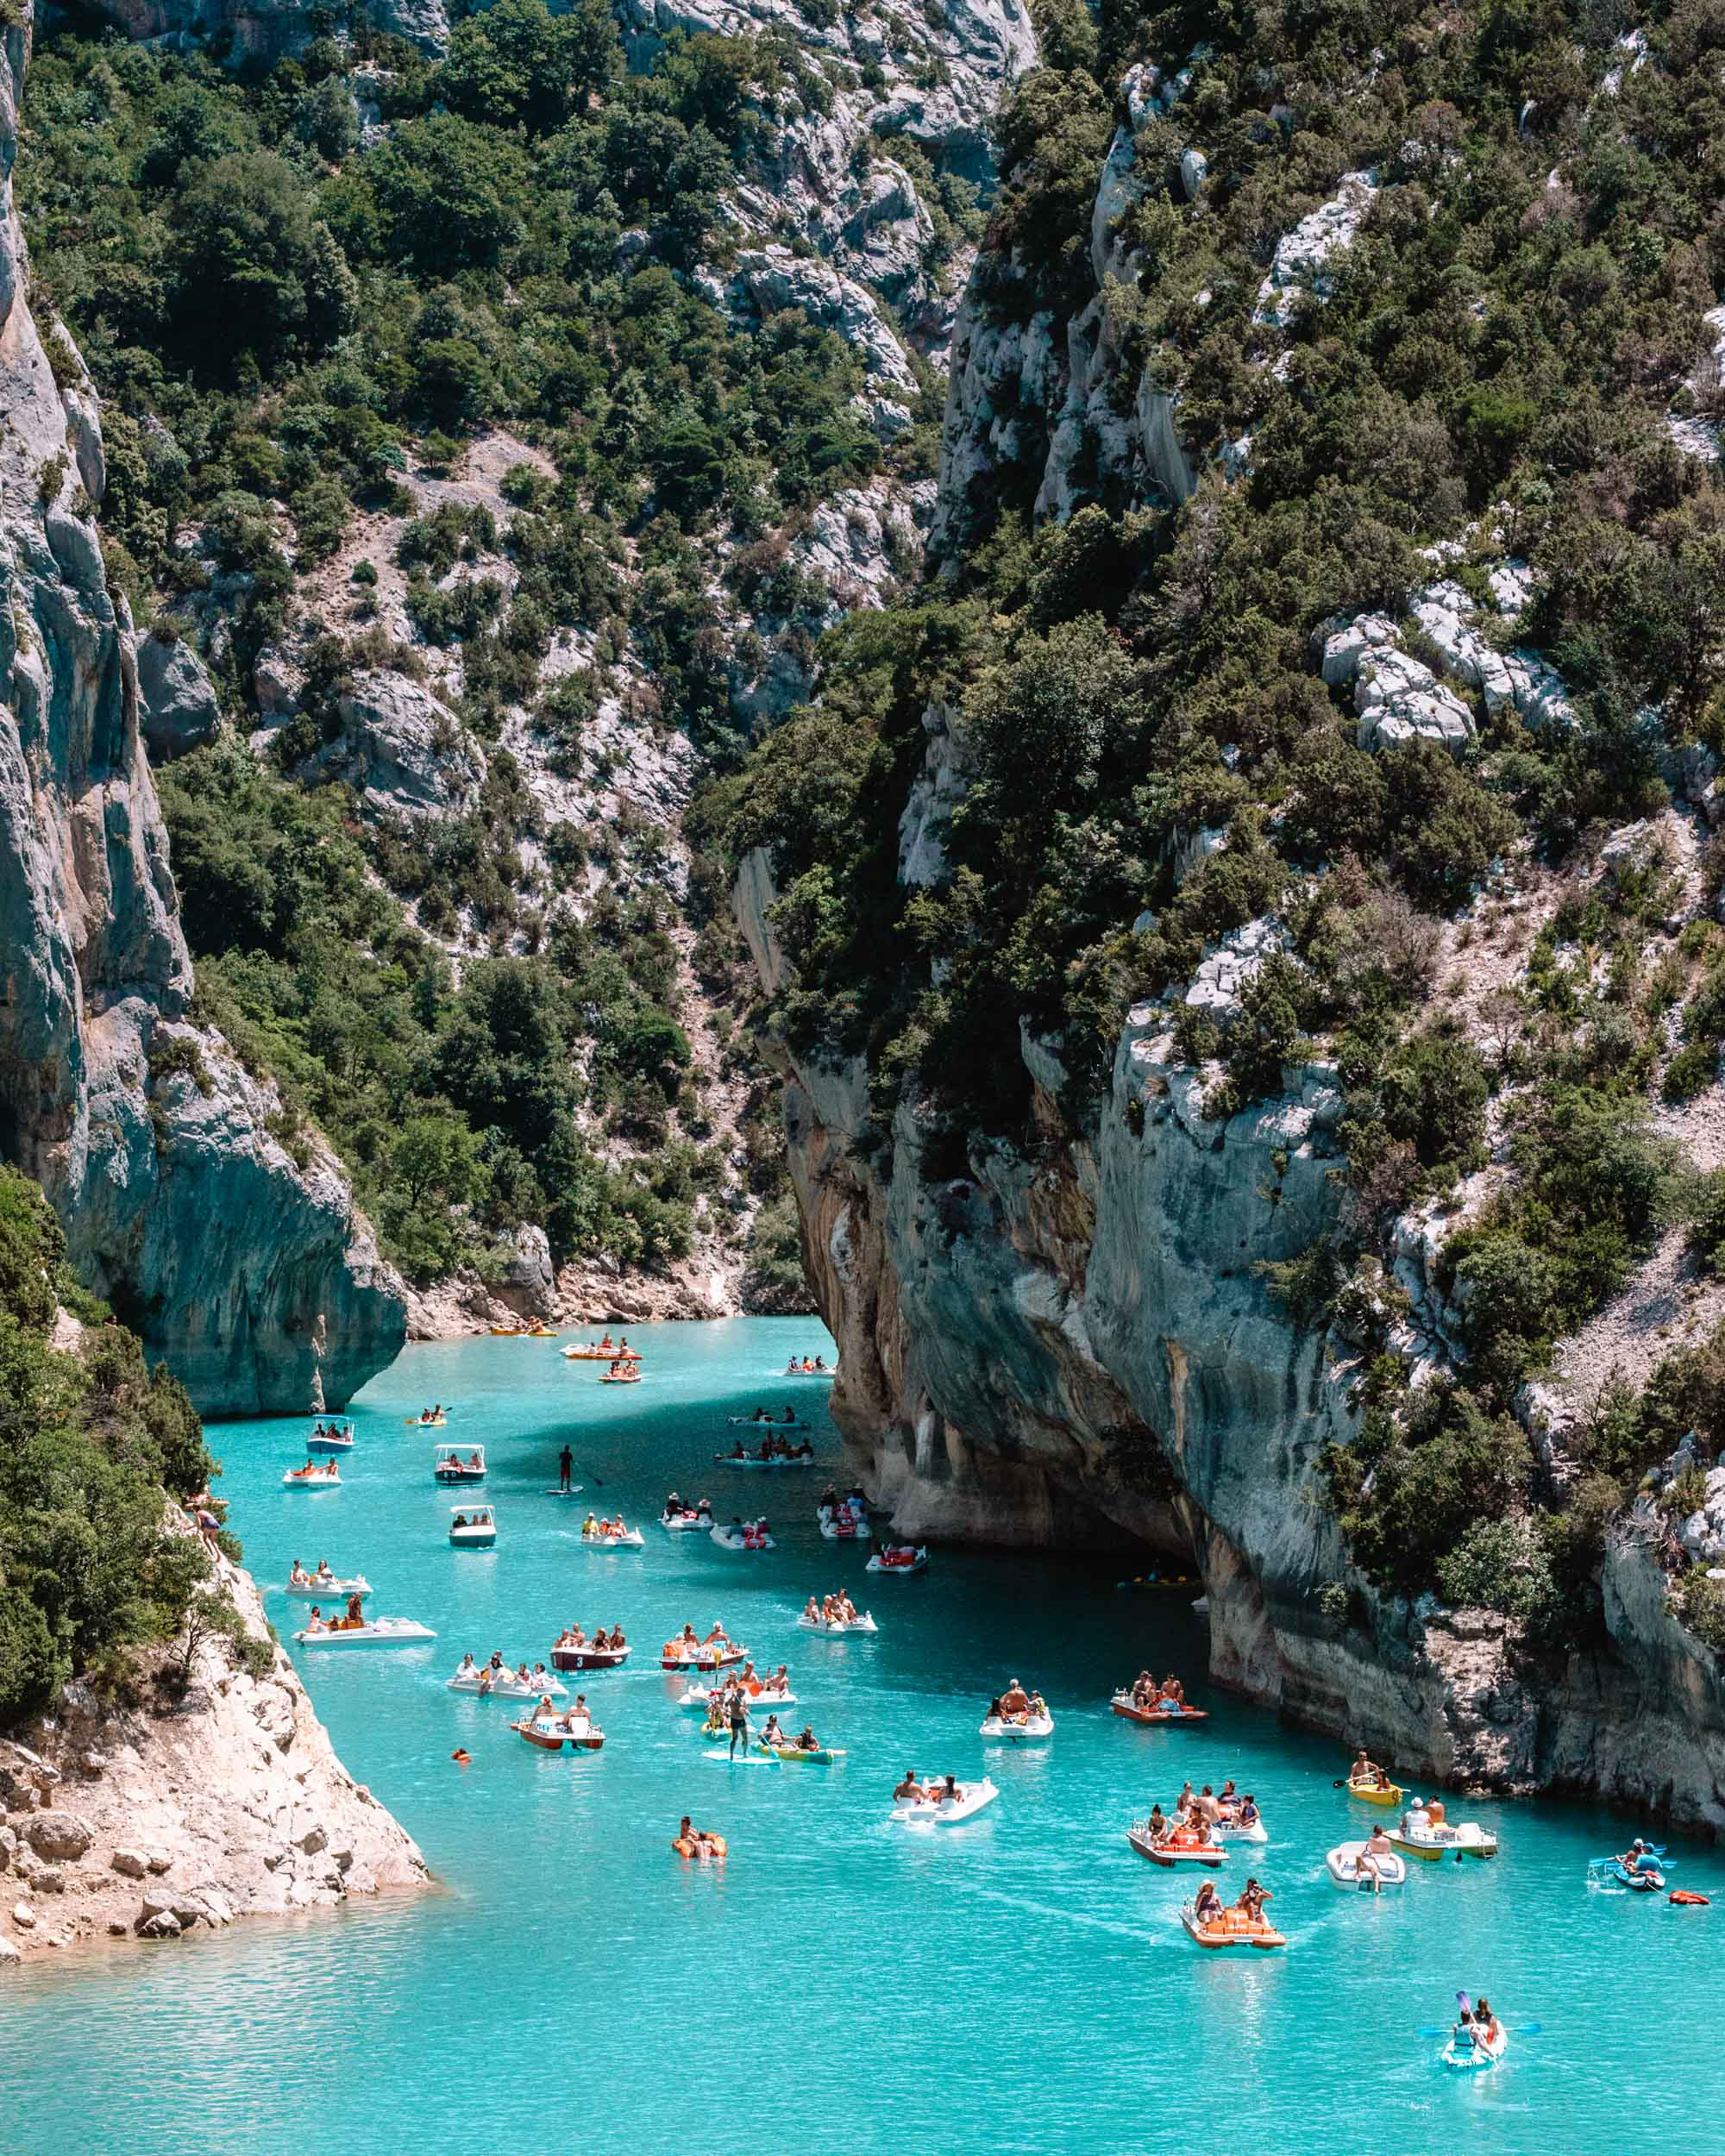 Gorges du Verdon in Provence, South of France